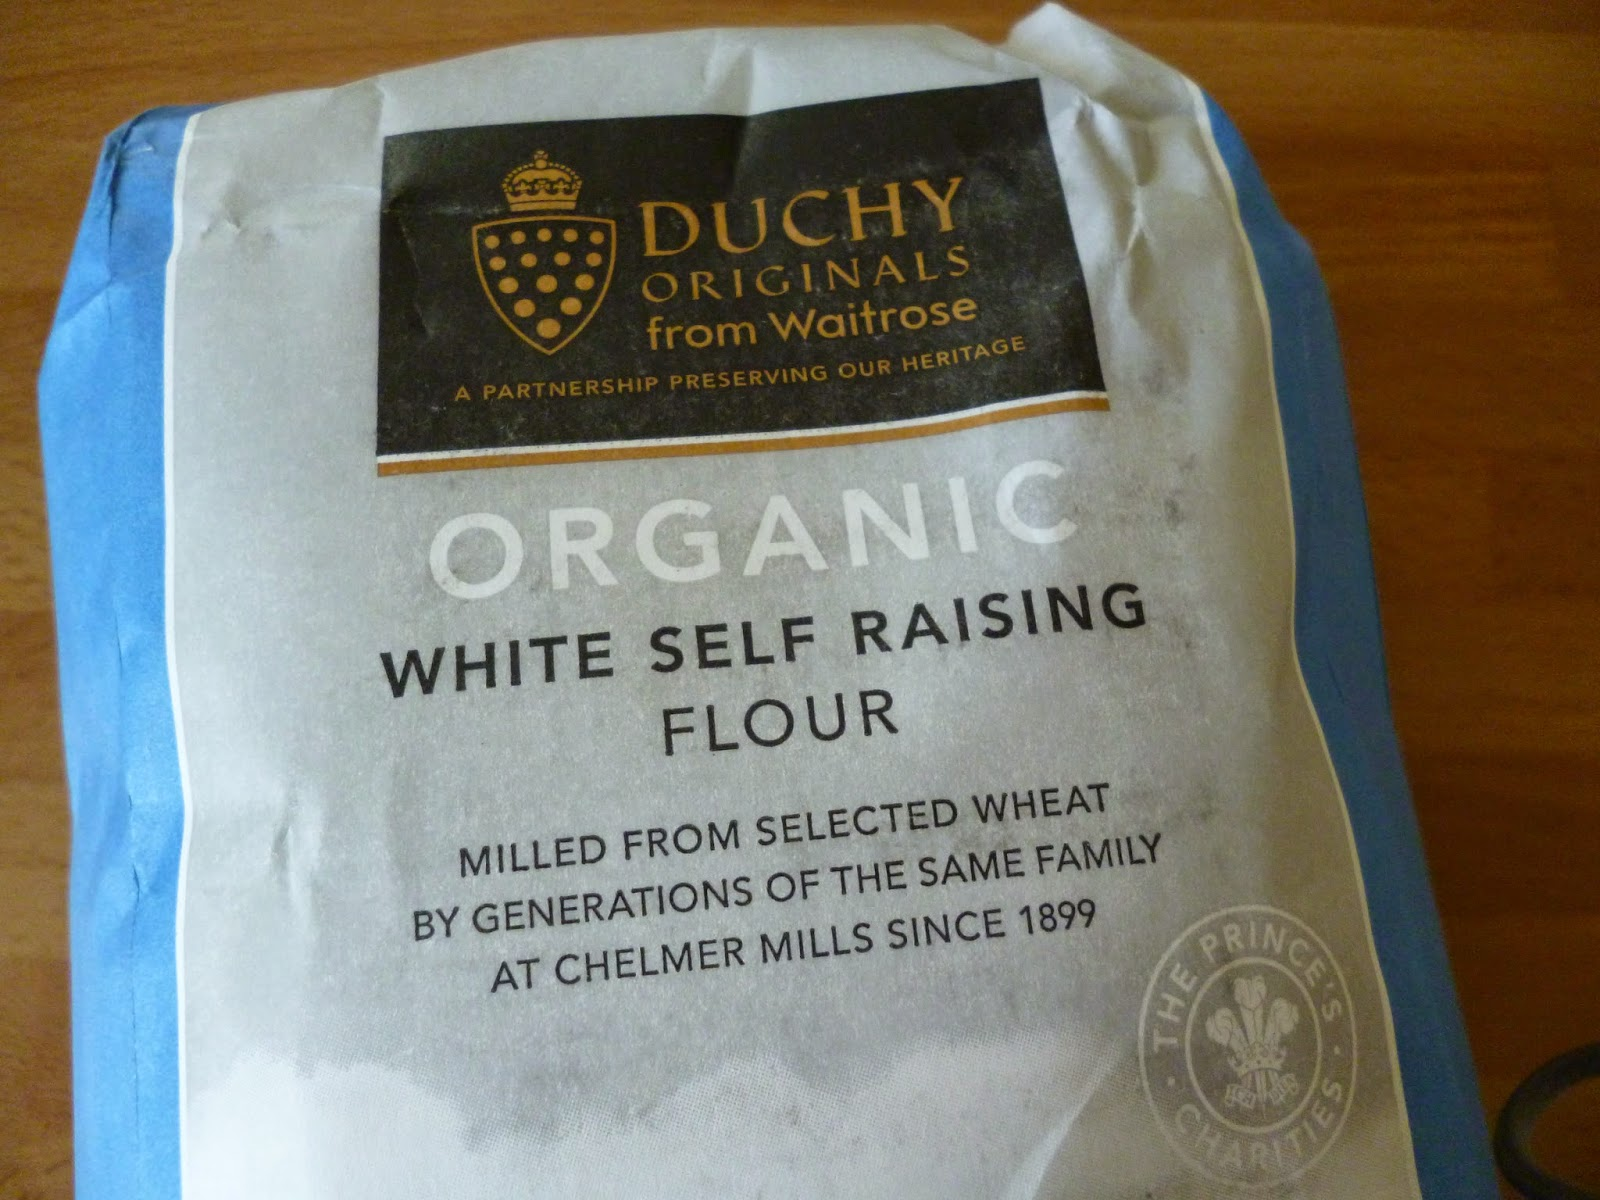 a bag of organic flour